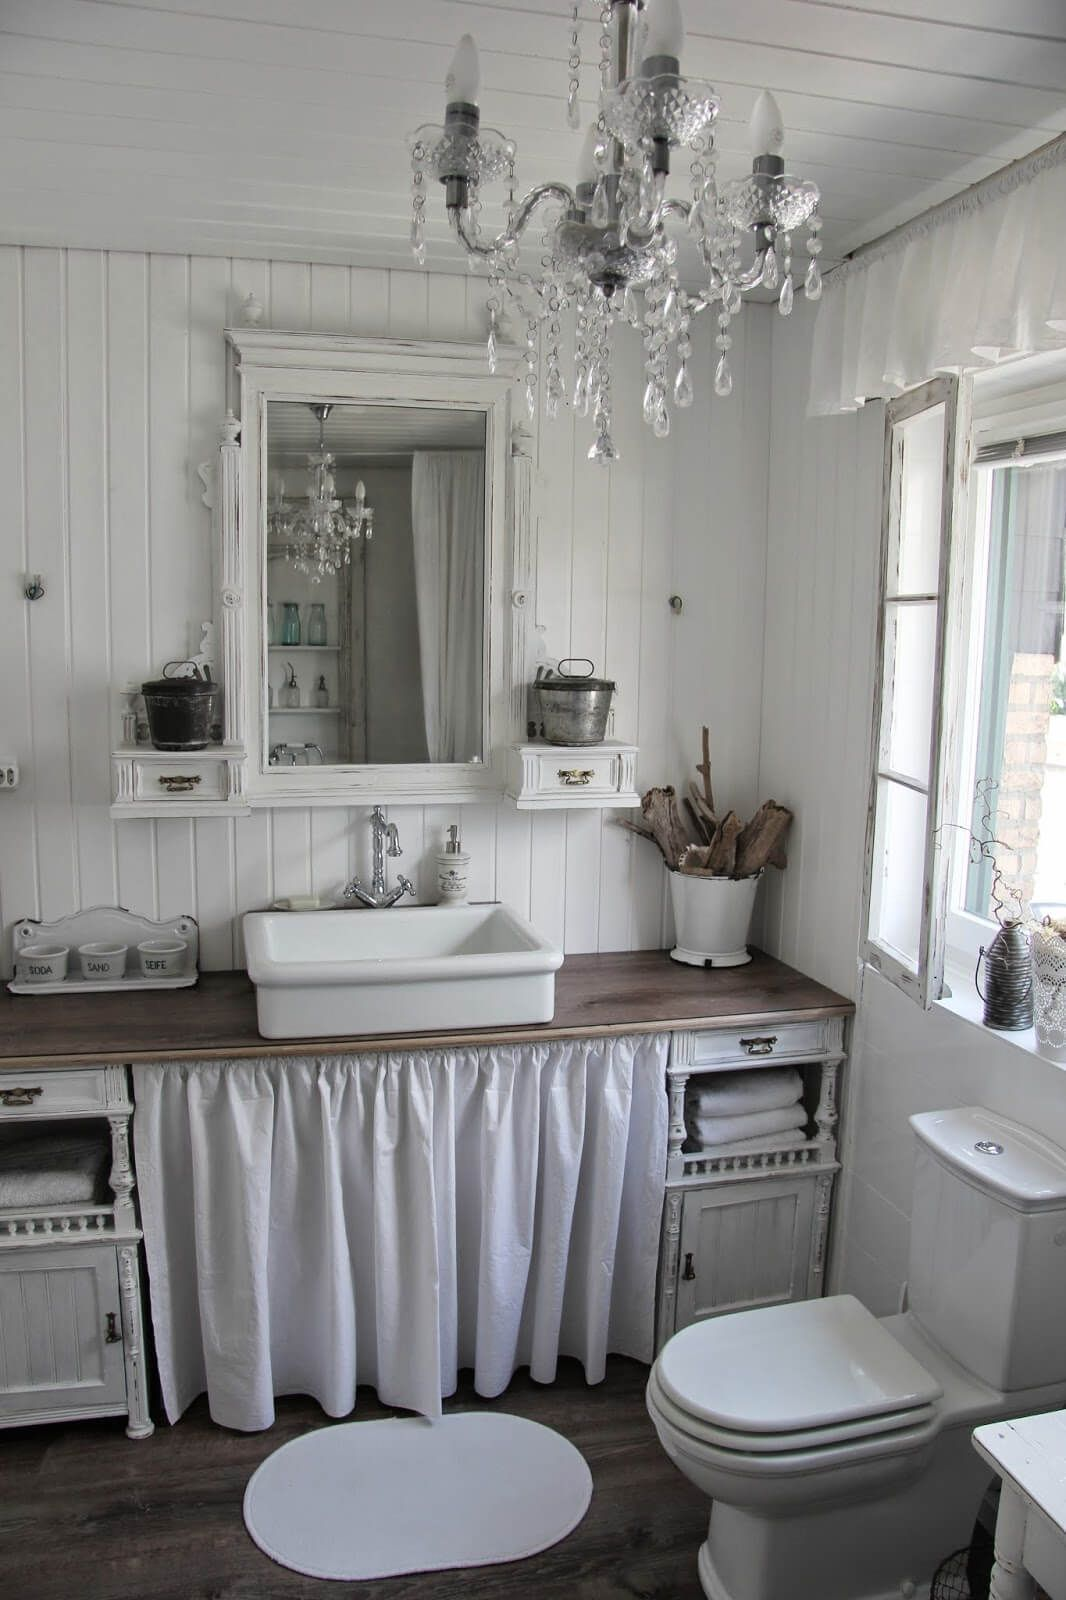 28 Ways to Give Your Bathroom a Shabby Chic Vibe